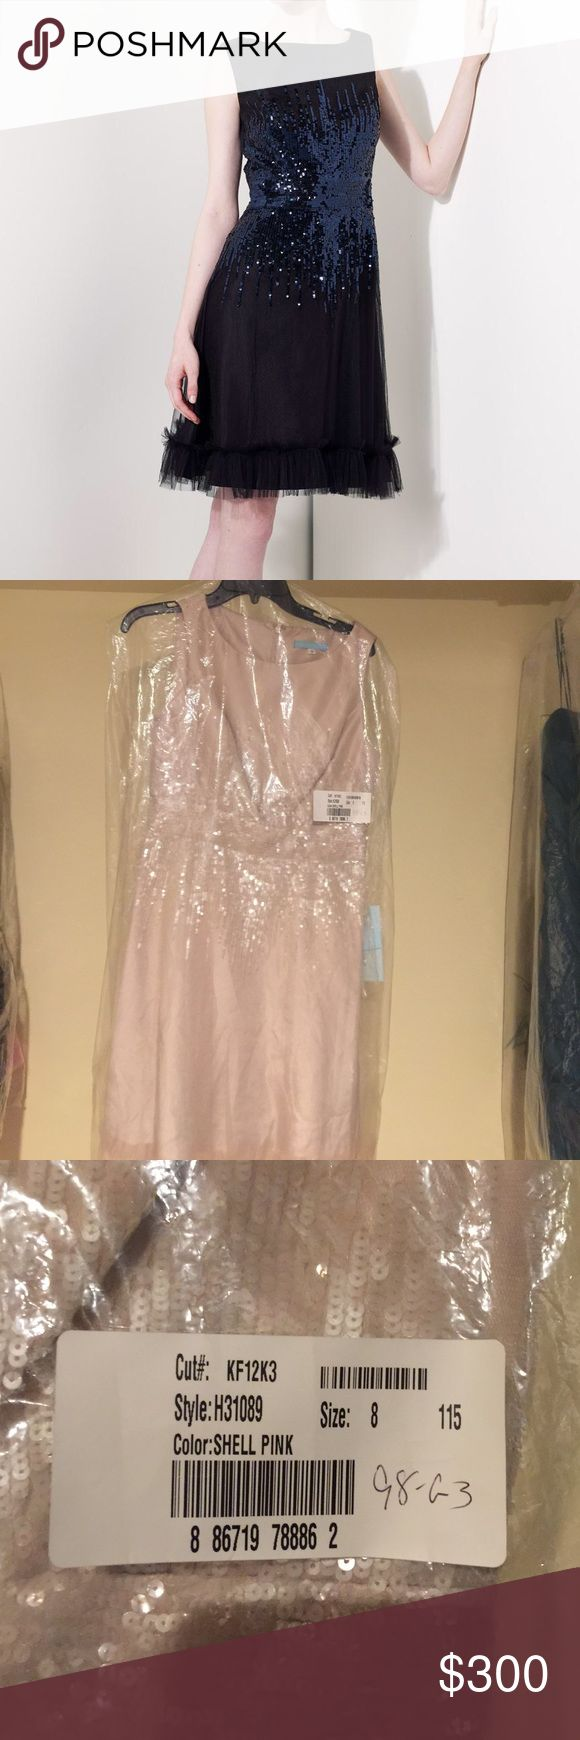 Kathy Hilton Shell Pink Dress!👗👗 New with Tags.  Kathy Hilton H31089. Size 8. Shell Pink. kathy hilton Dresses